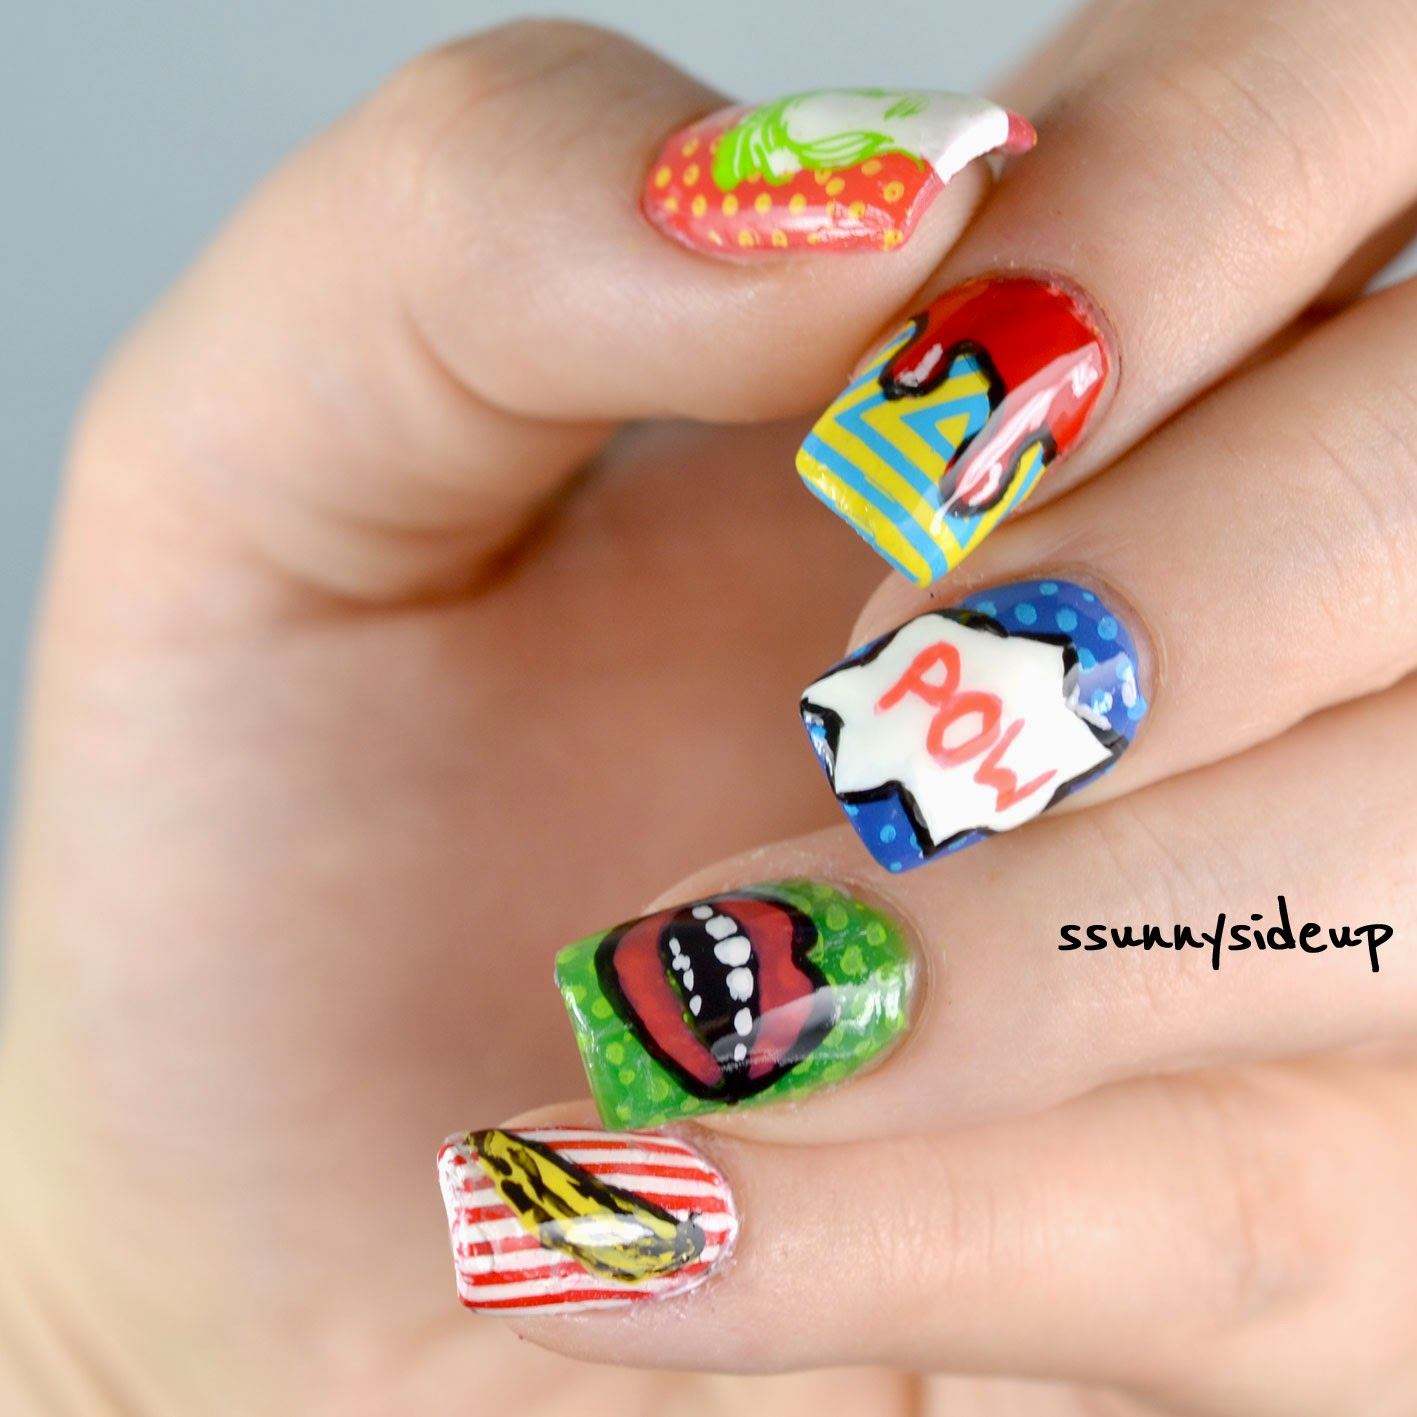 Ssunnysideup review pop art nail art in my had and somehow i couldnt imagine it on my nails the only thing i know was that i absolutely wanted an andy warhol banana on one of my fingers prinsesfo Choice Image